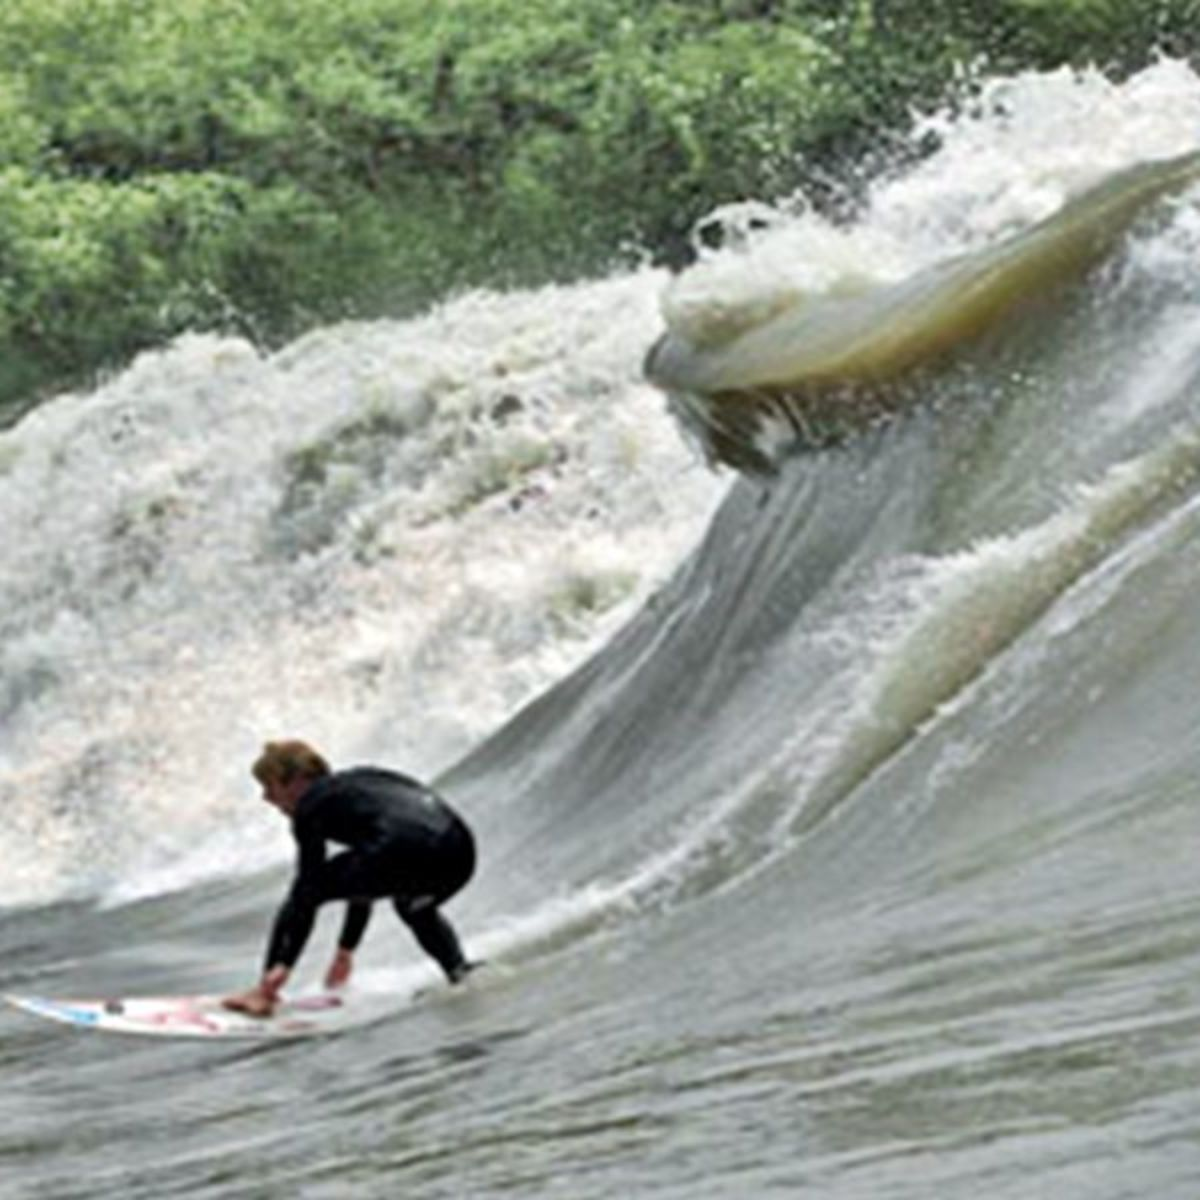 Surfing the brown waves of the Amazonas river: Pororoca